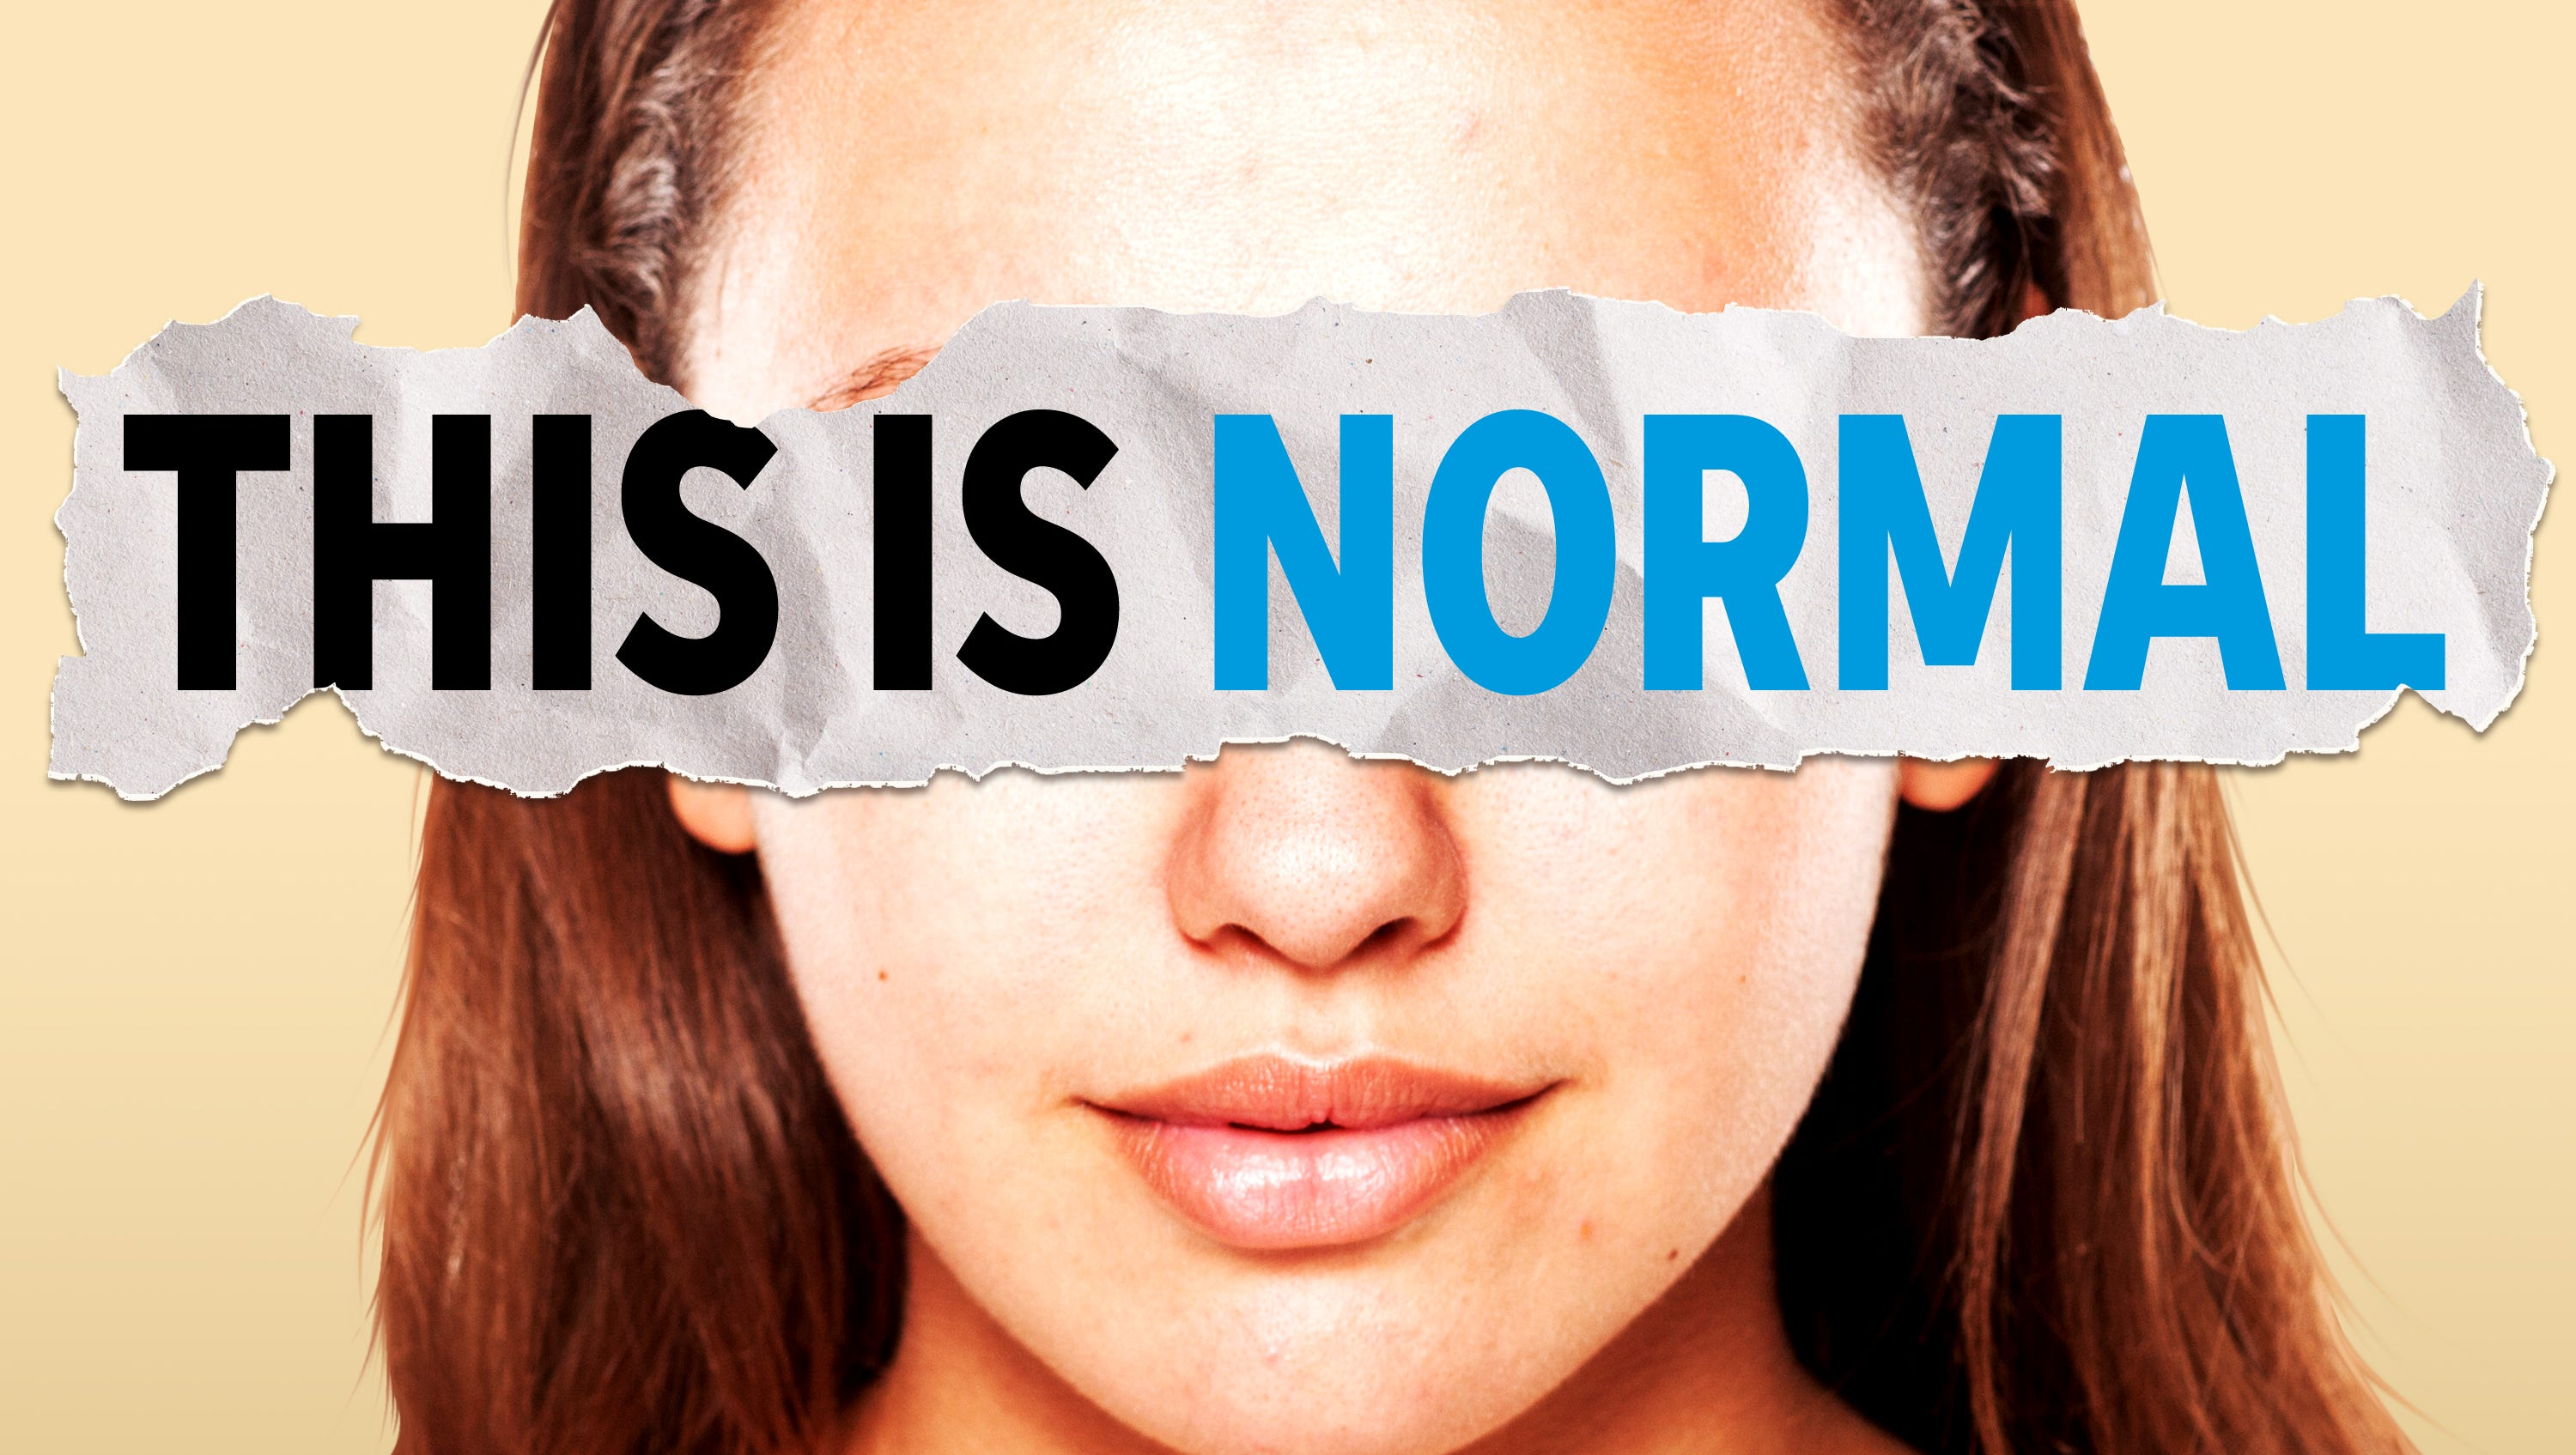 Kids in Crisis podcast: This is Normal: Download it now on iTunes